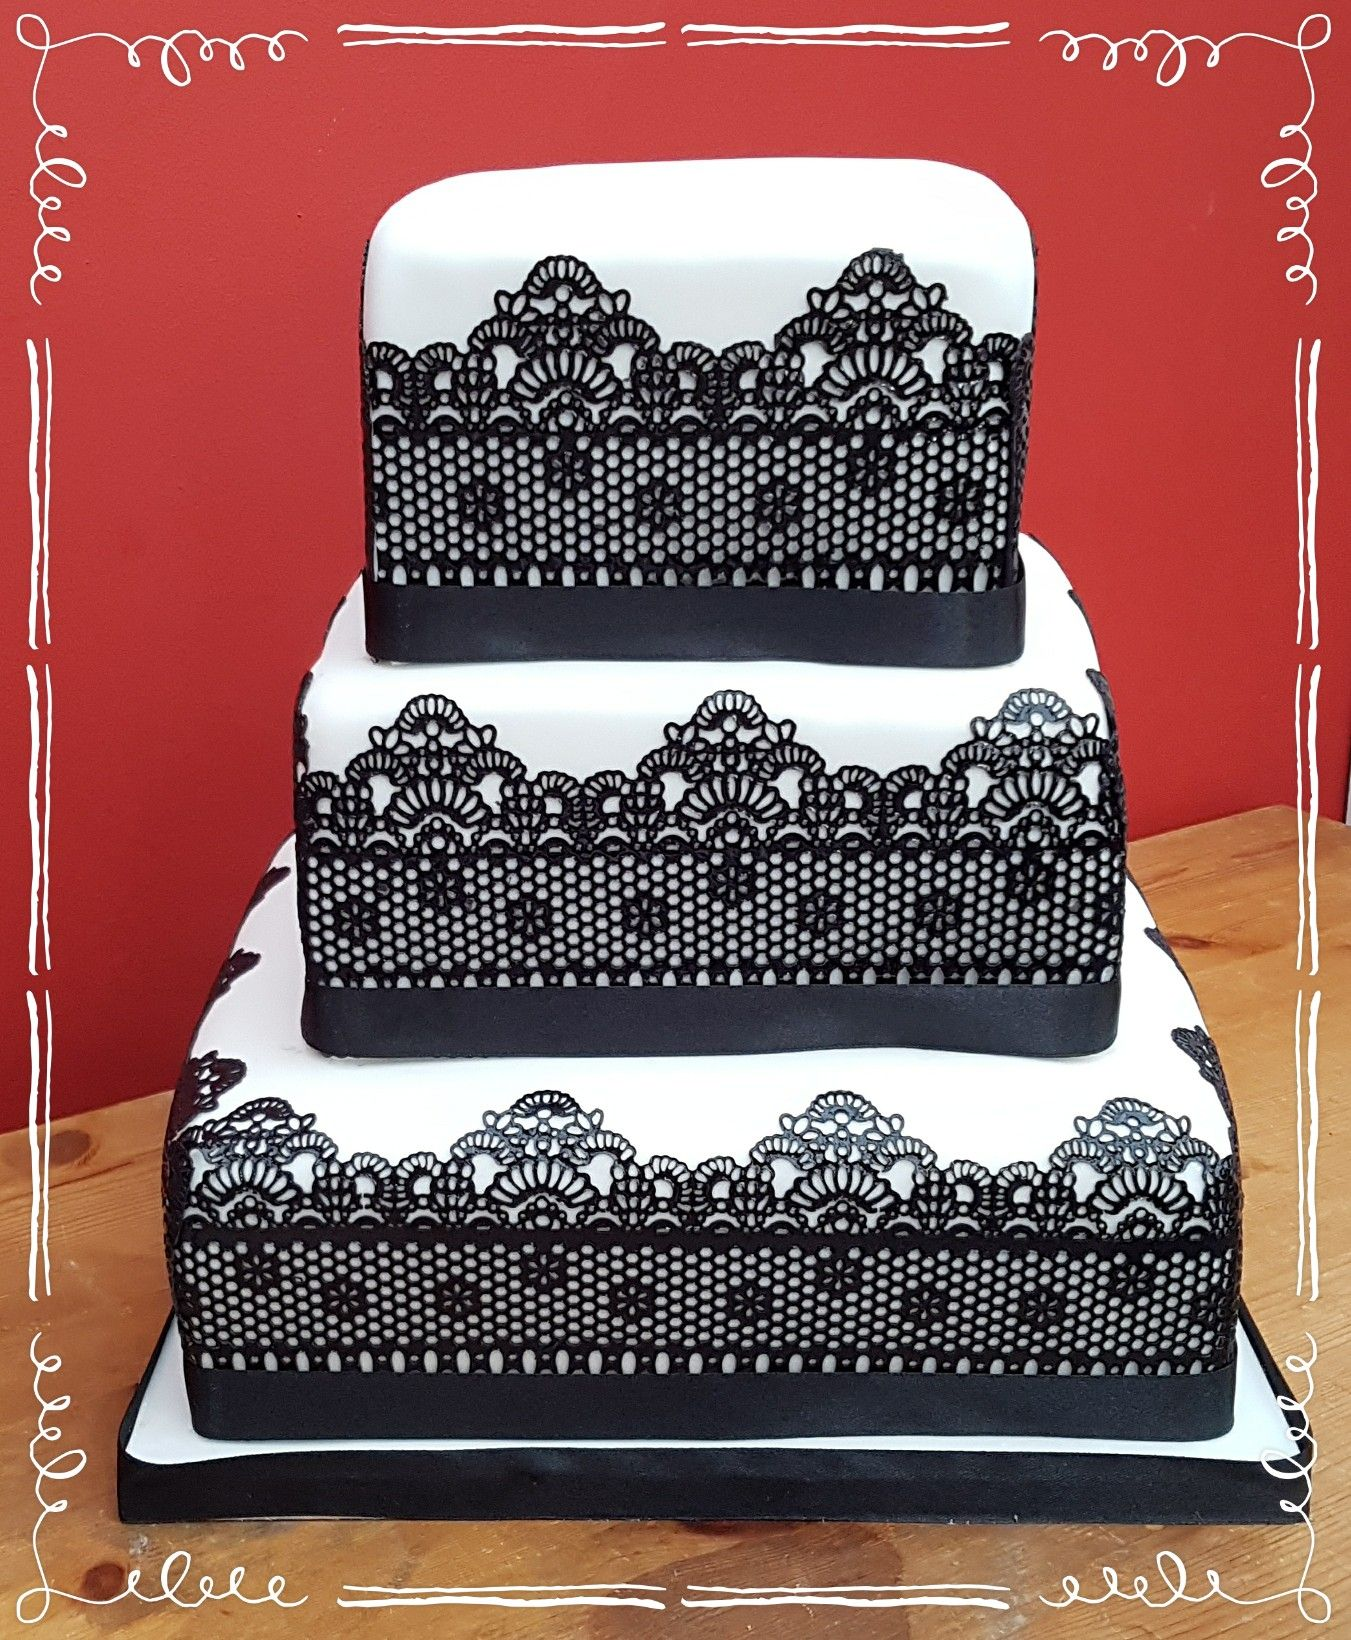 Black and white tier square wedding cake with black lace detail